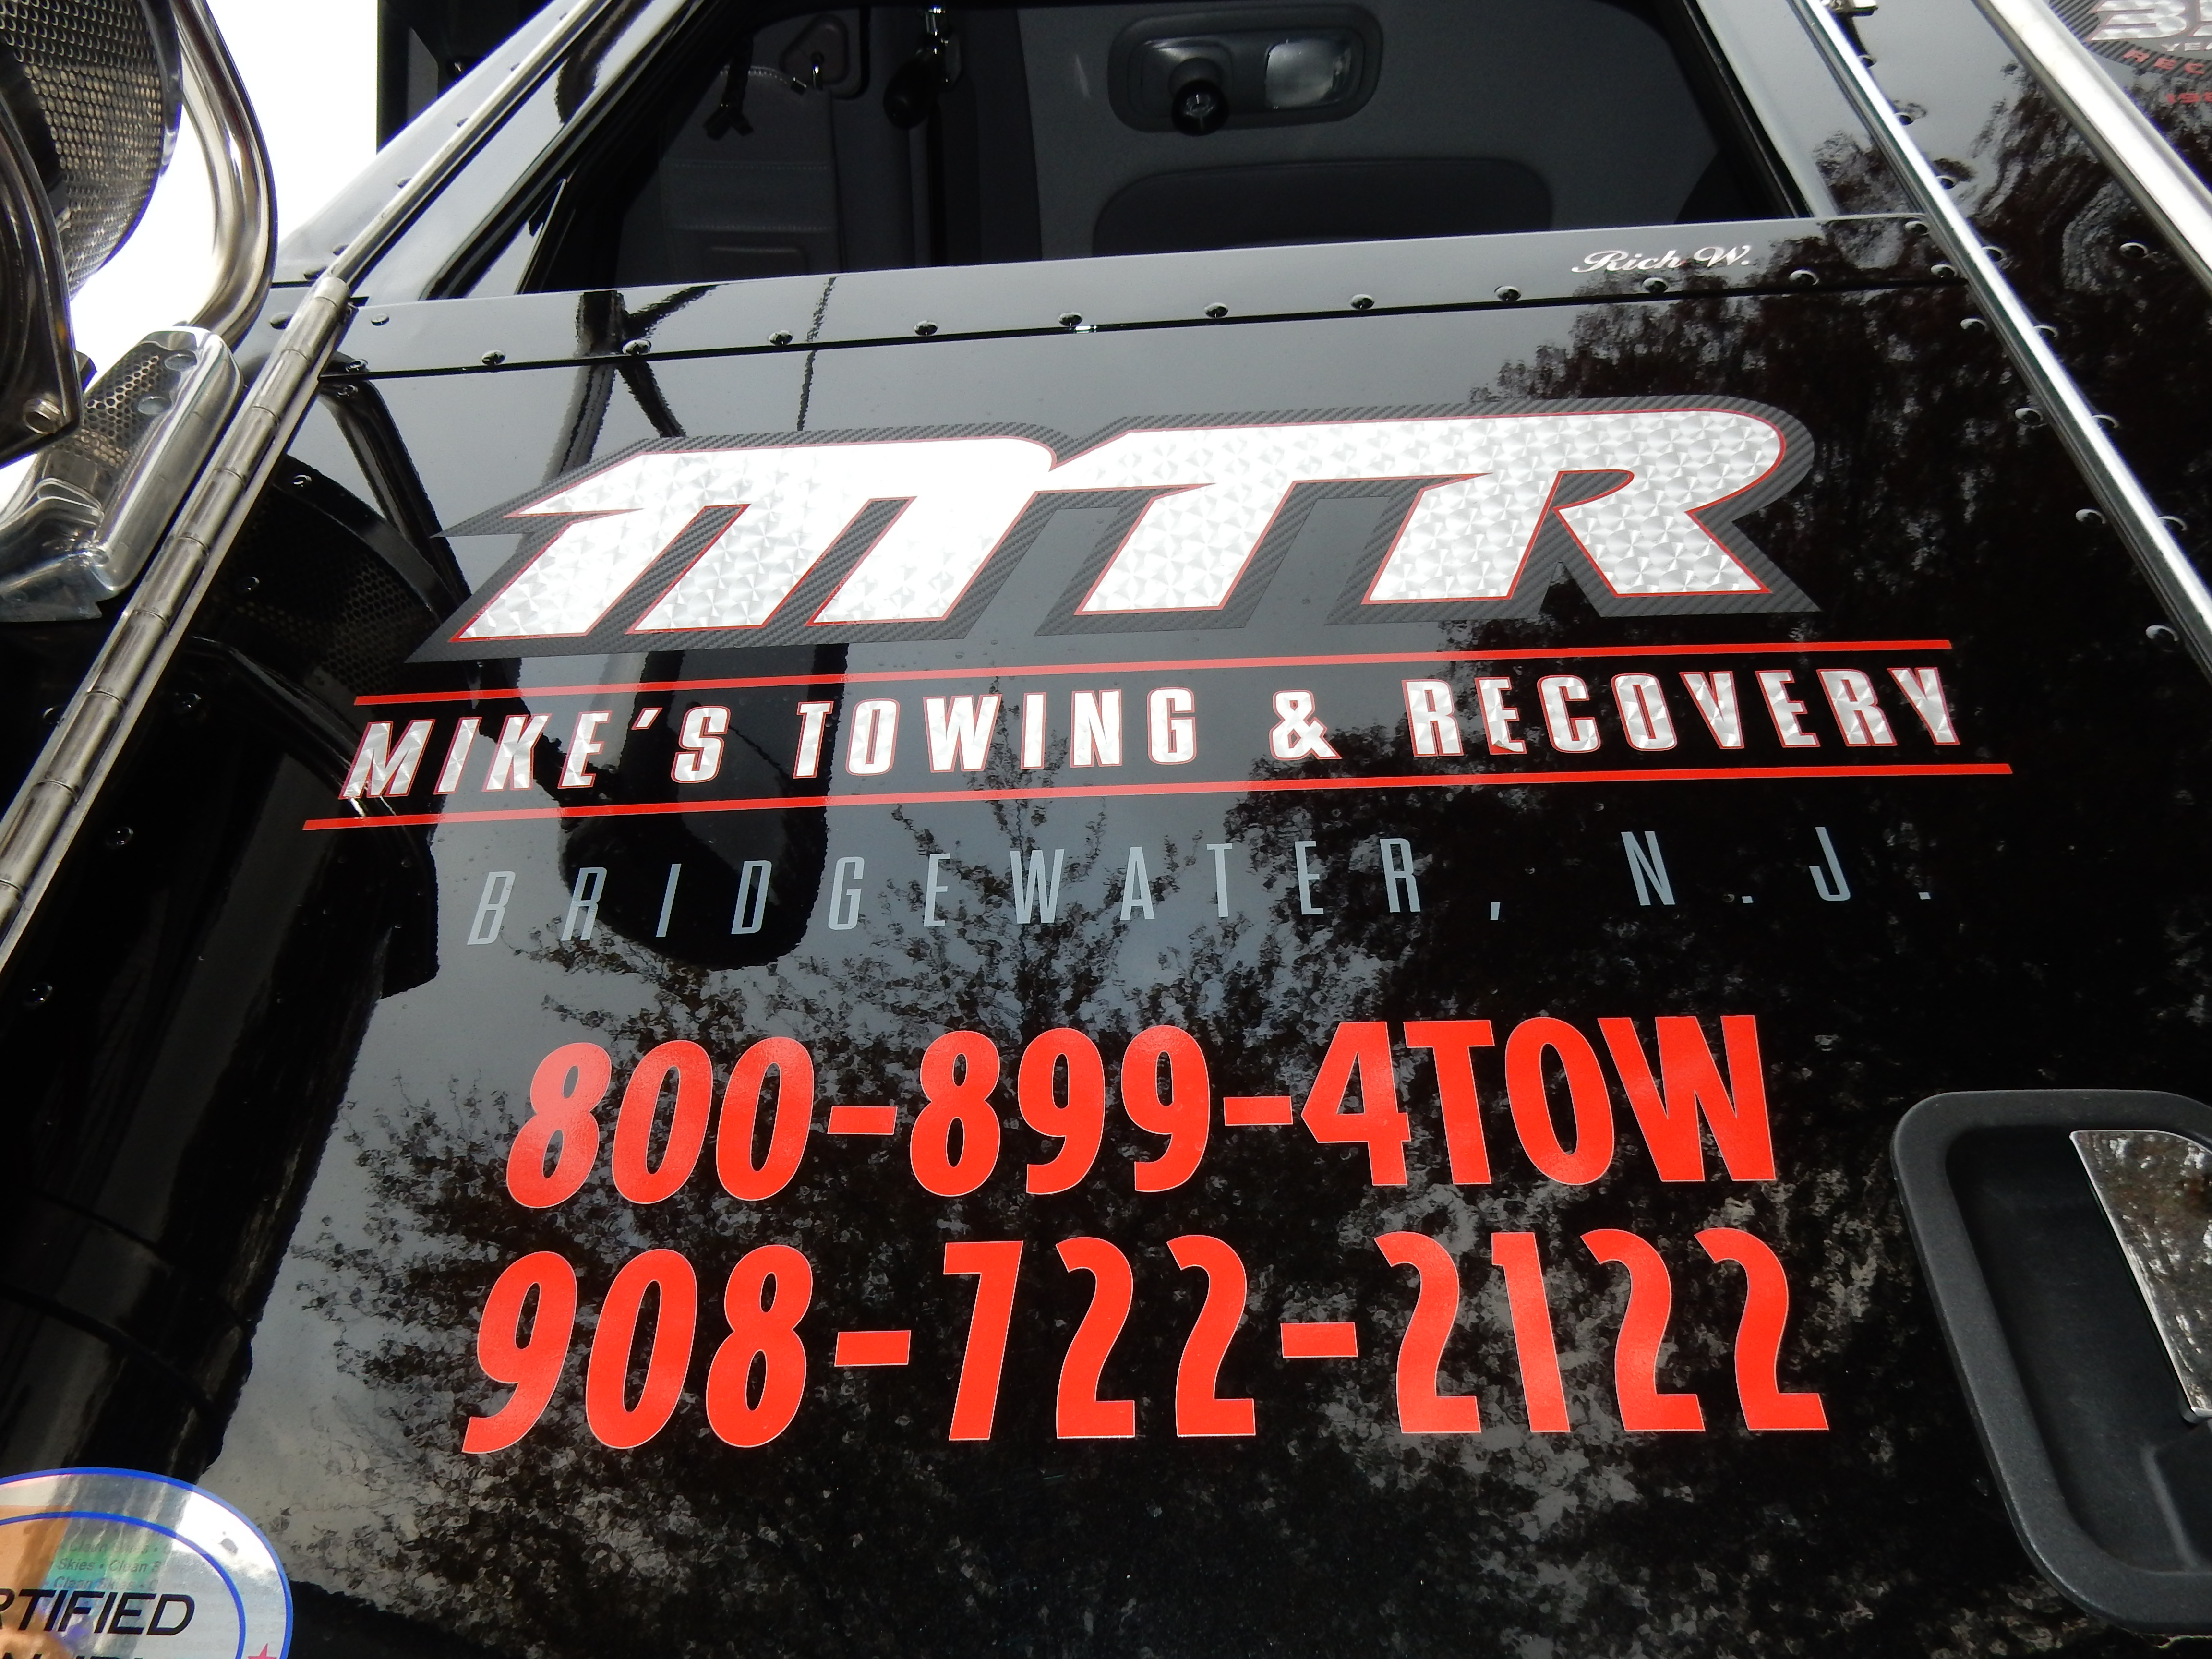 Mike's Towing & Recovery image 31